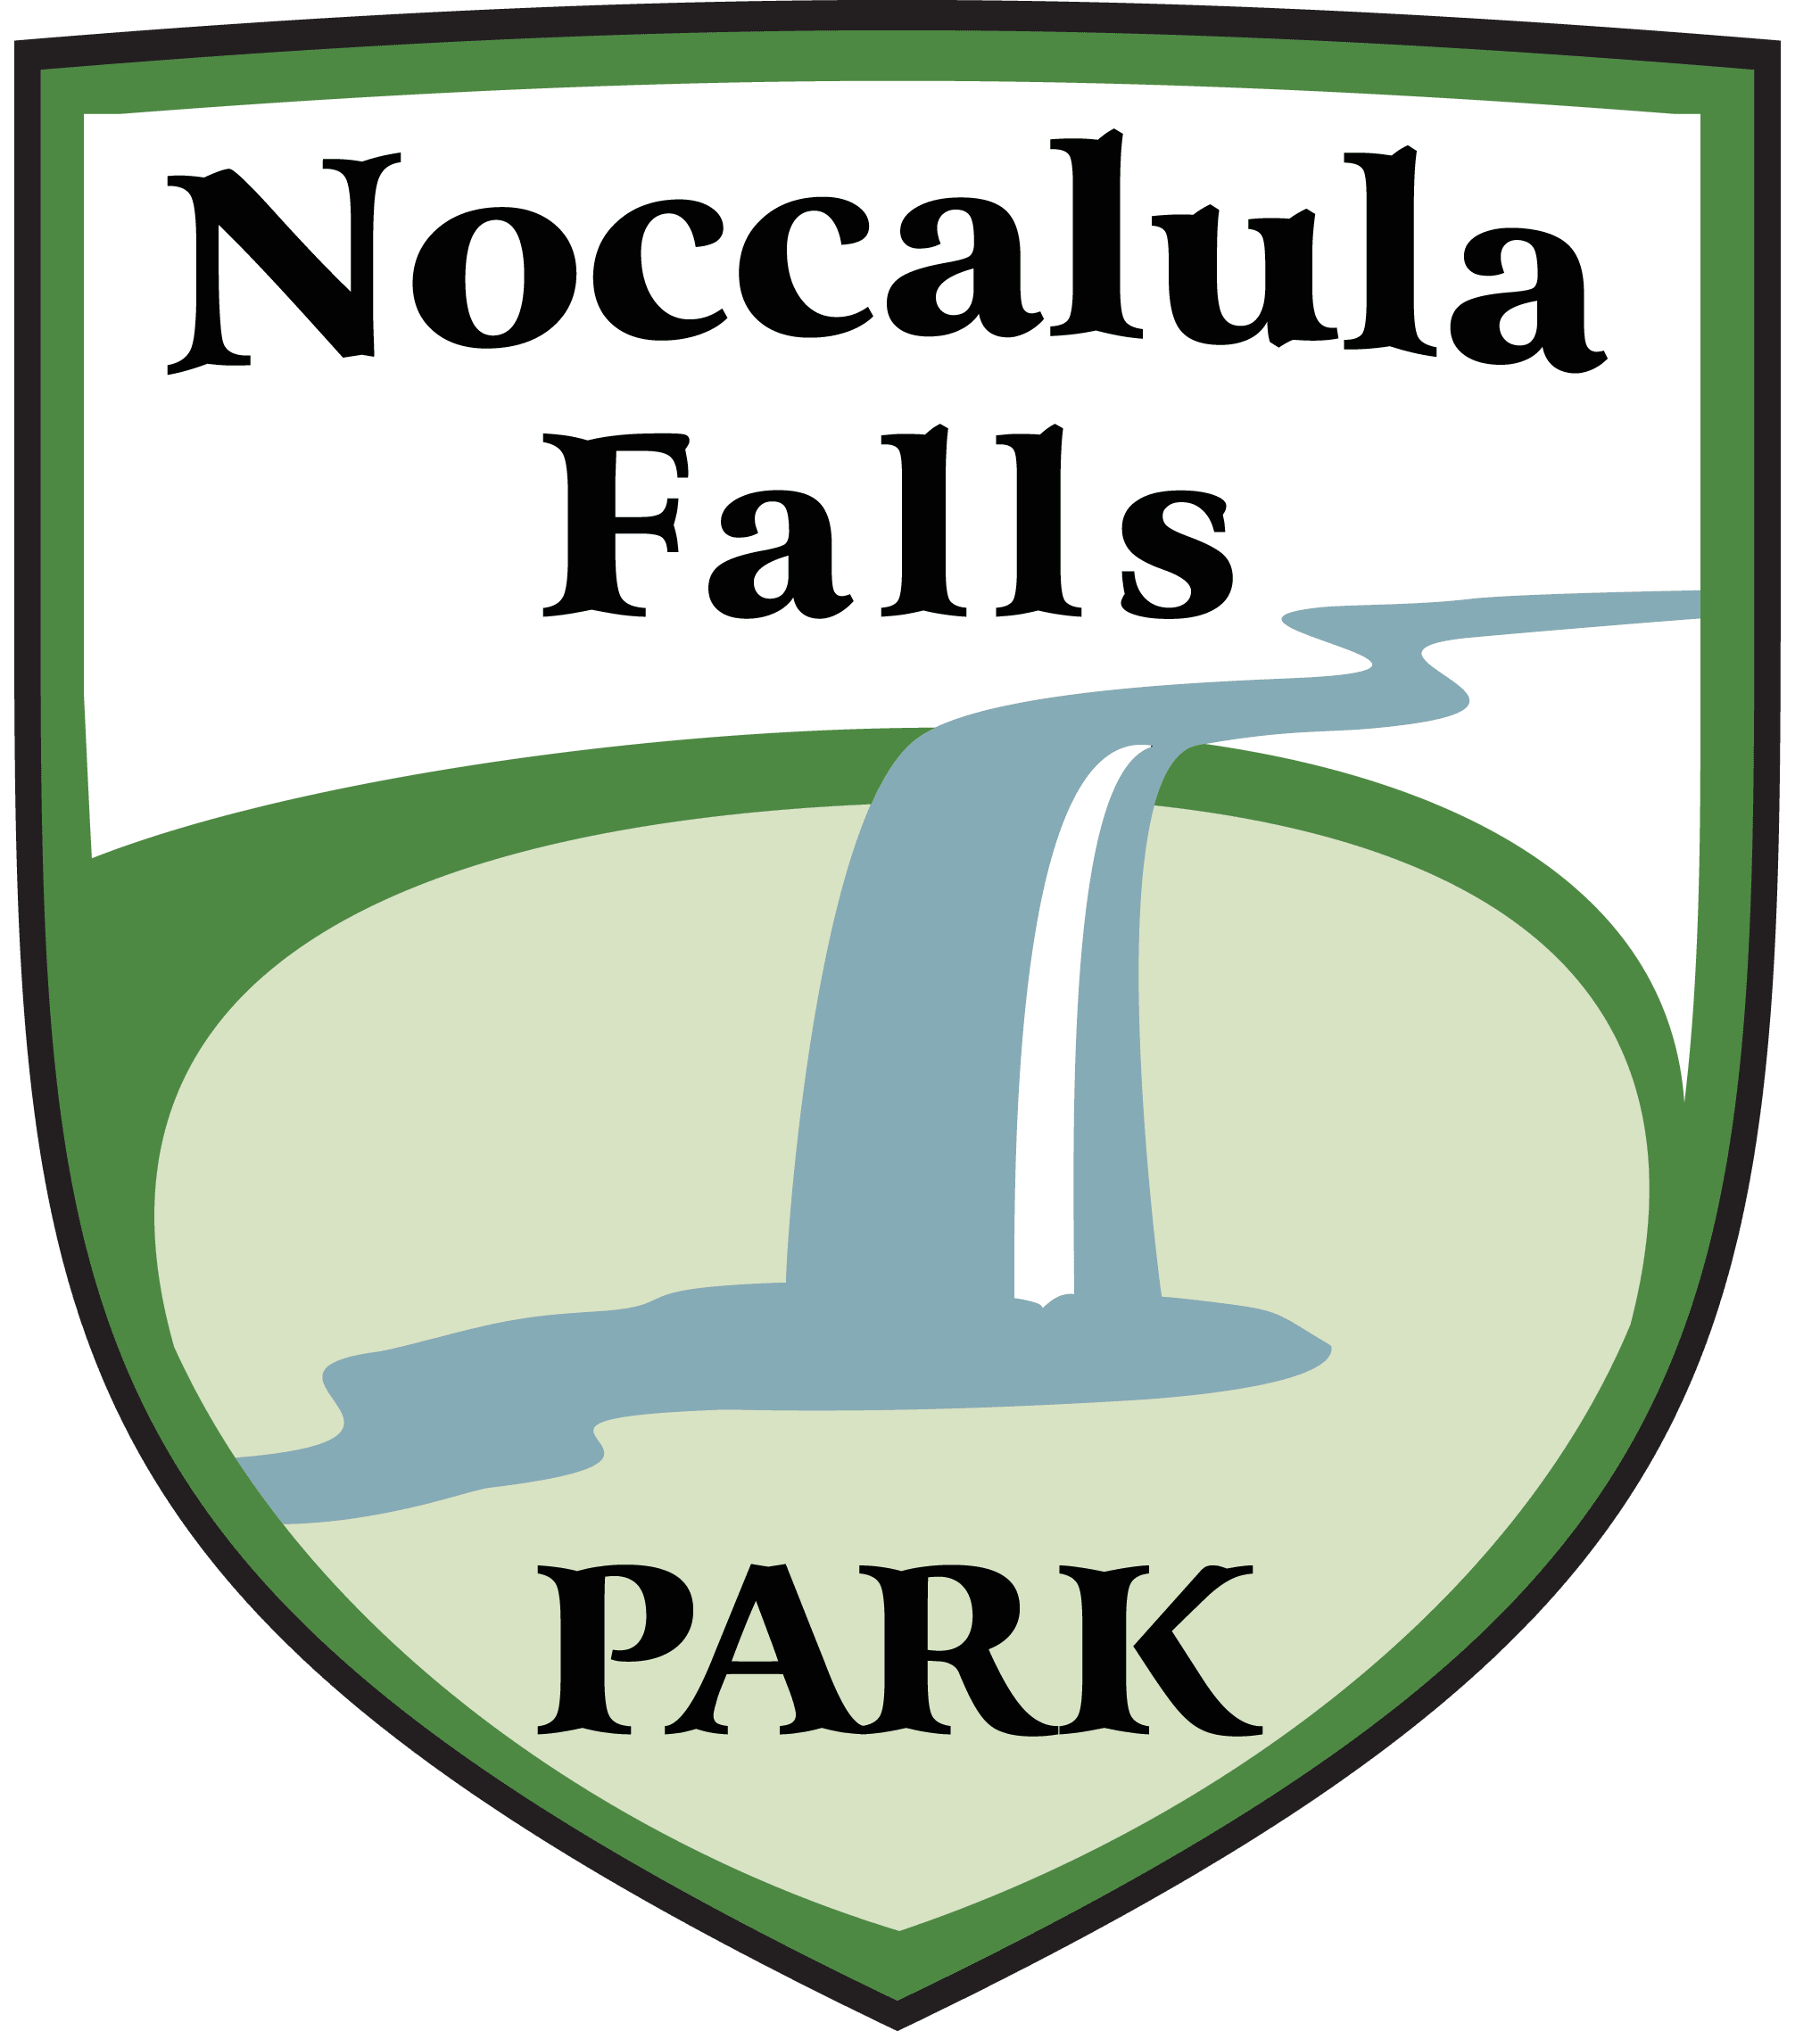 Noccalula Falls - Park logo lighter